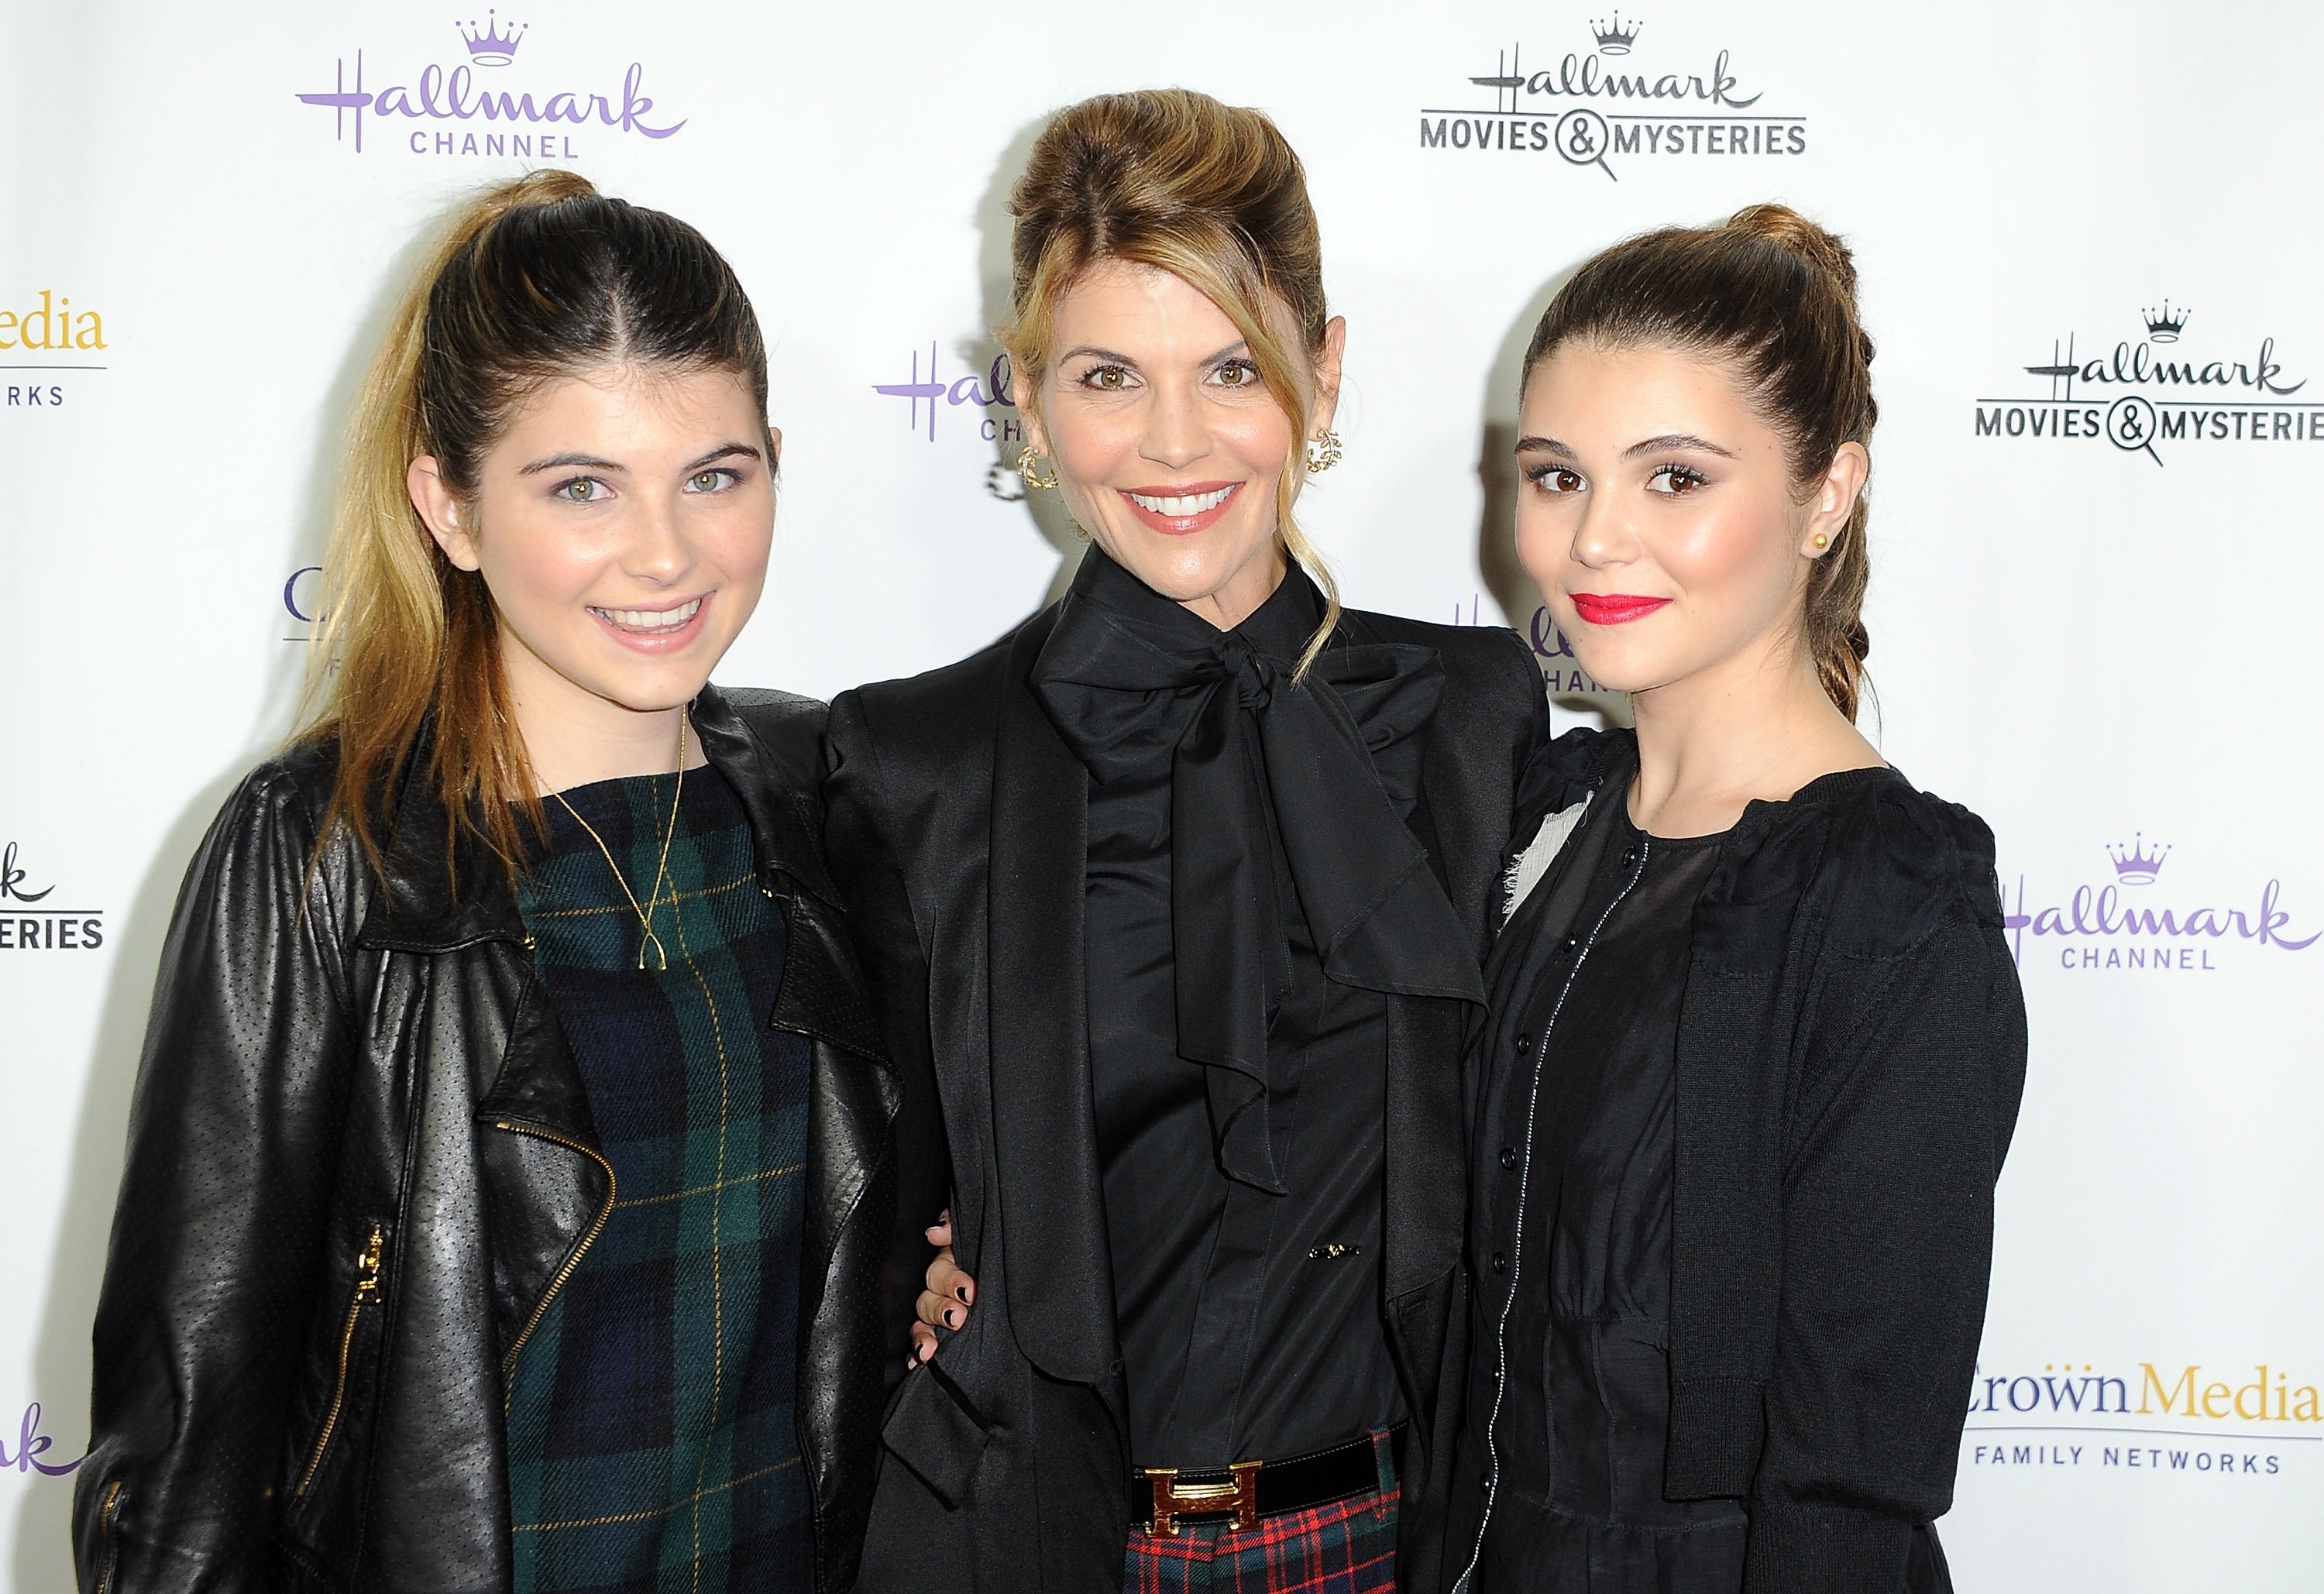 Actress Lori Loughlin and her daughters Isabella Giannulli and Olivia Giannulli at Hallmark Channel's annual holiday event | Source: Getty Images